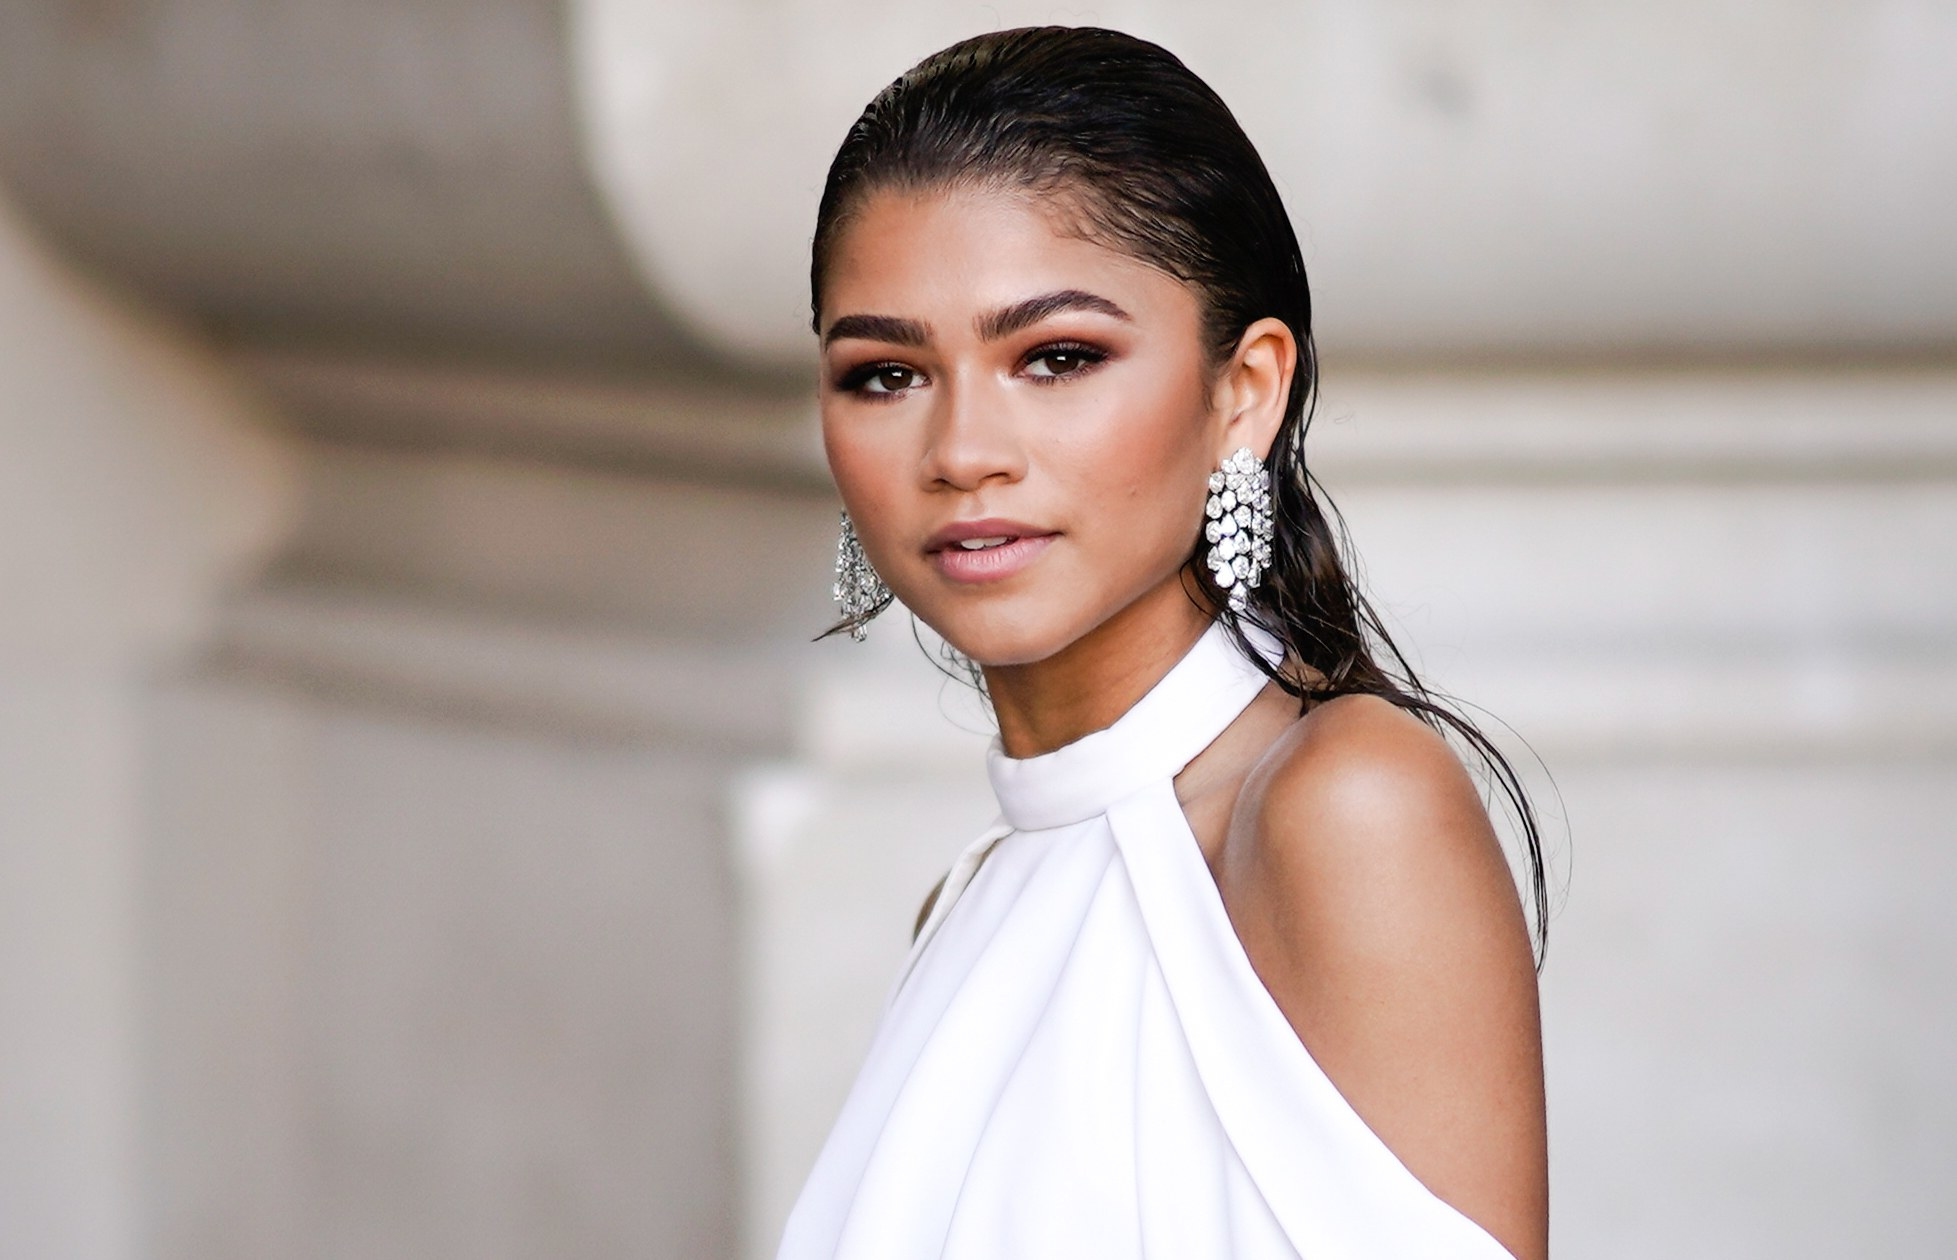 Who does zendaya date in Melbourne